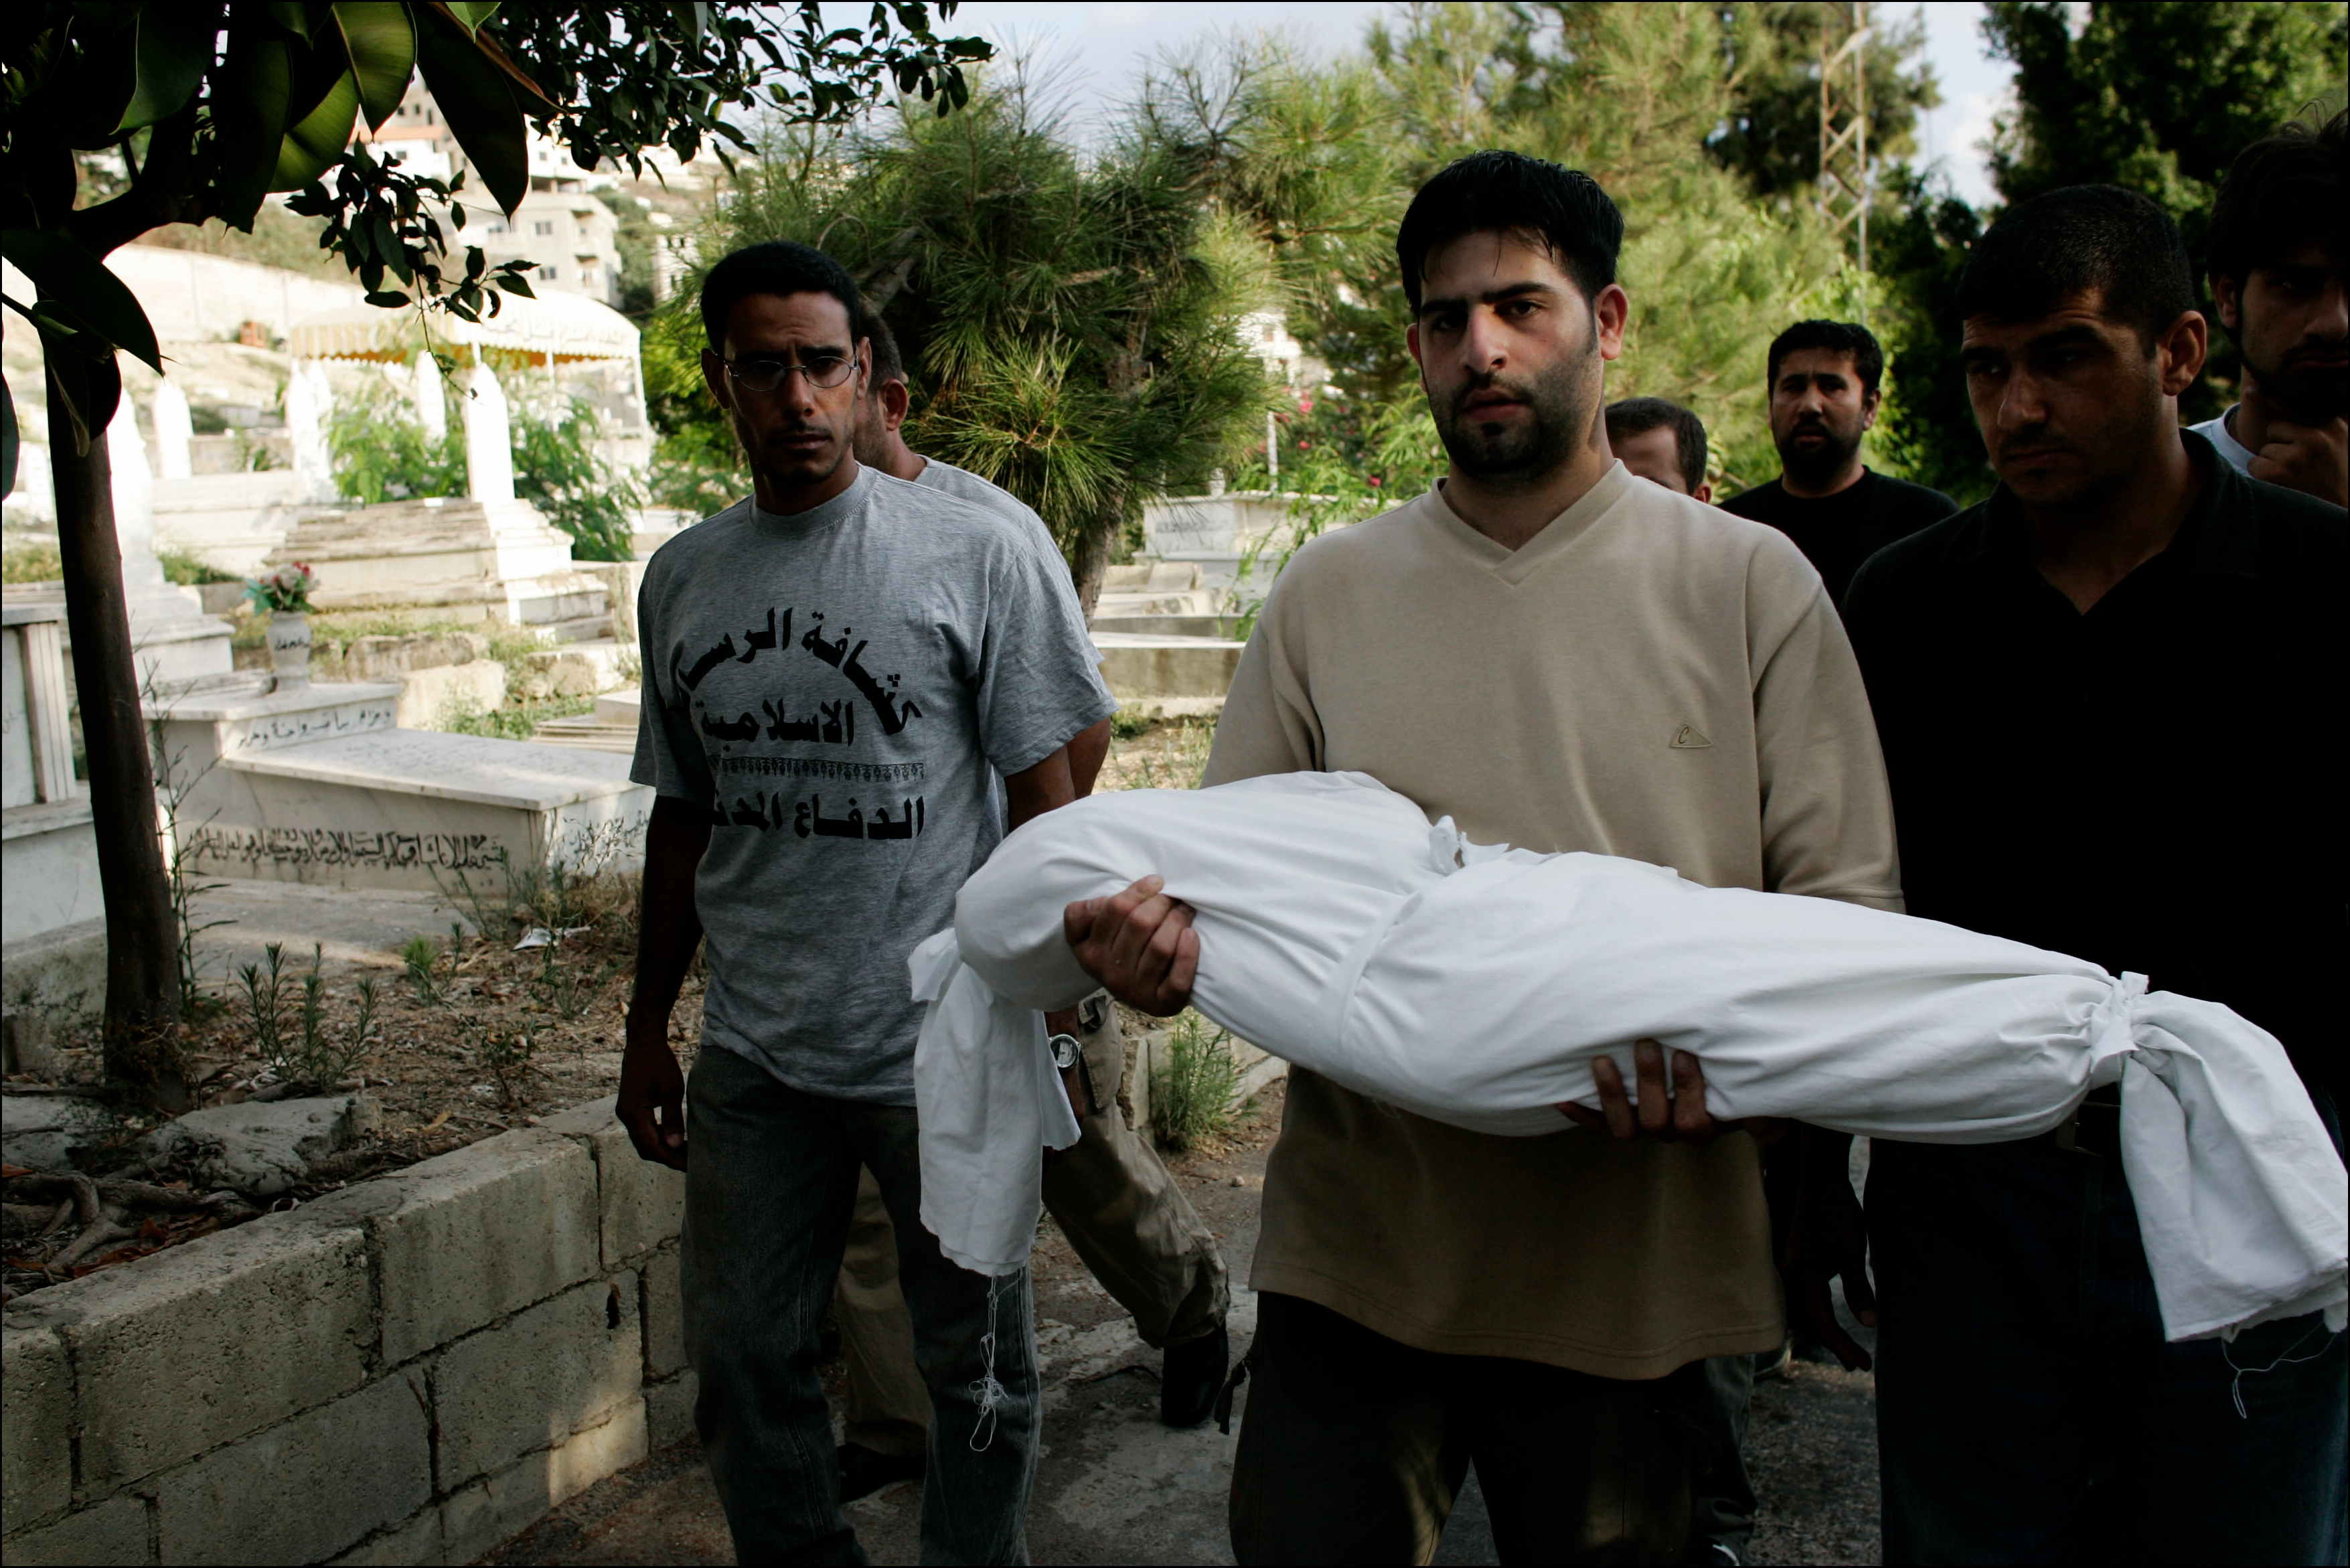 Residents of Ghaziyeh, near Sidon, Lebanon carry the body of 2 year old Malek Jbeiri to a hurriedly made grave. The girl died when an Israeli airstrike targeted her family's building just as a funeral procession for the 15 victims of the previous mornings bombardment passed alongside the building, creating 13 more civilian deaths.